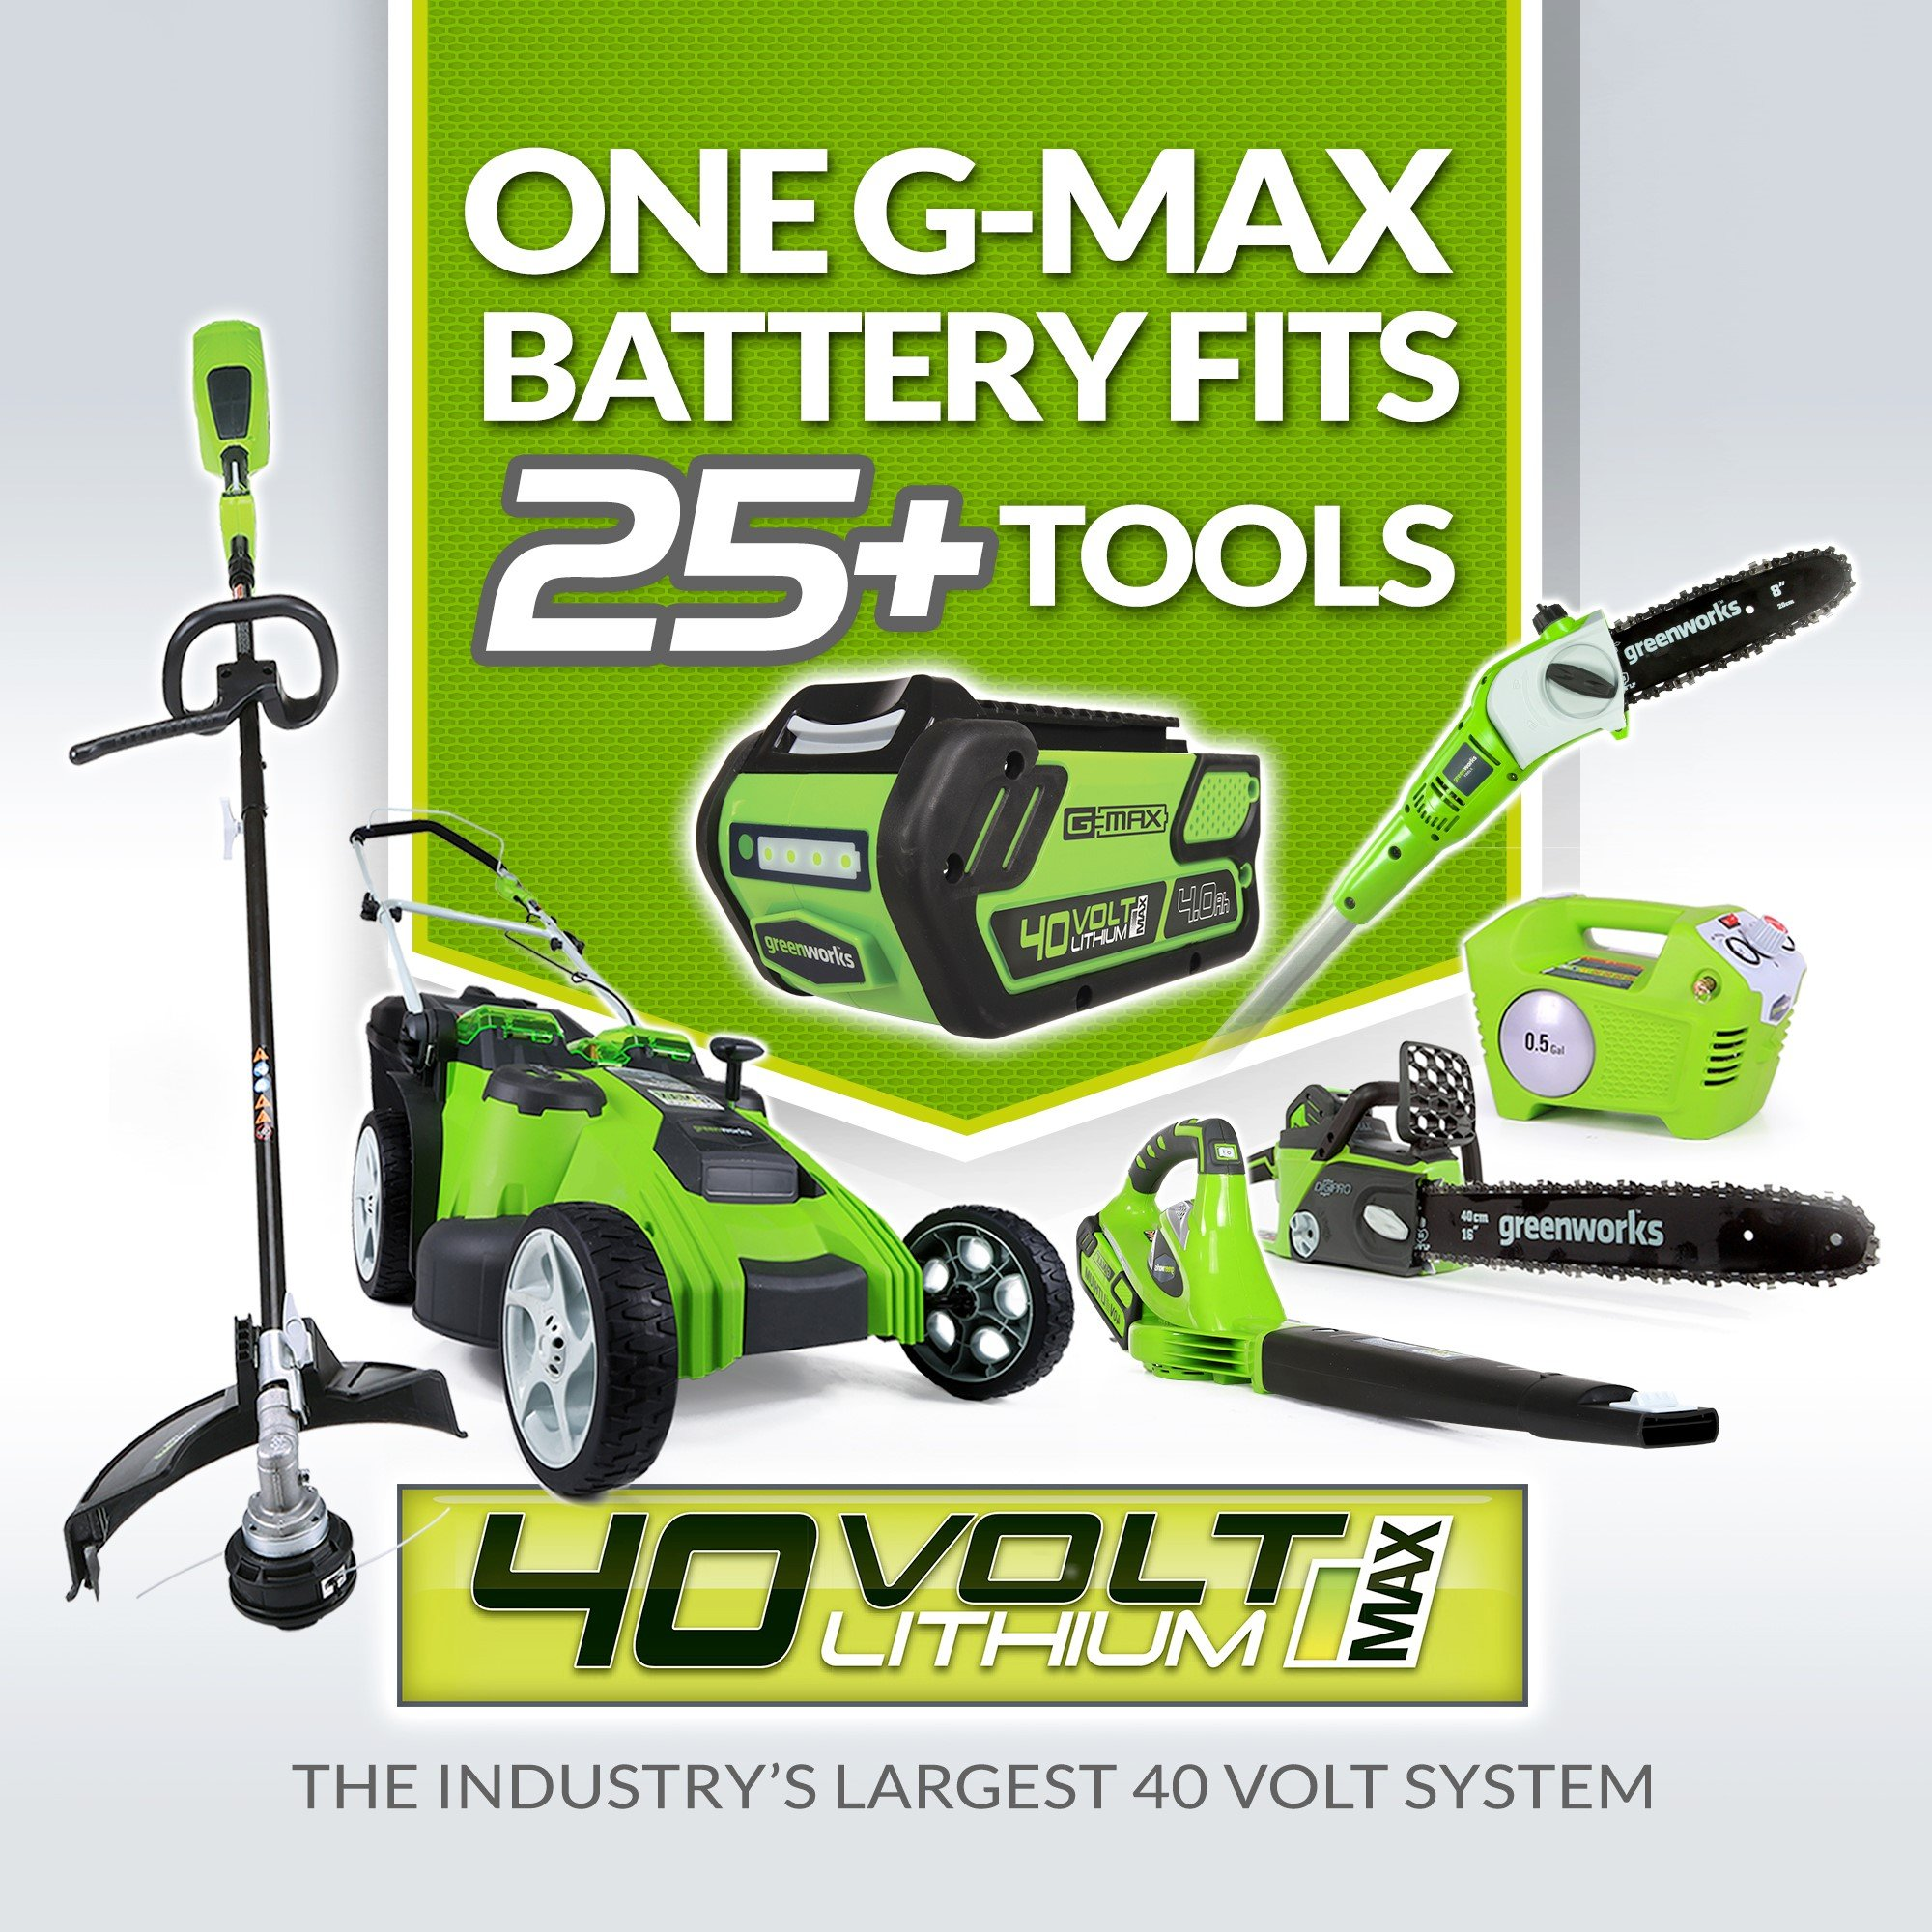 Greenworks 40V 185 MPH Variable Speed Cordless Blower Vacuum, 4.0 AH Battery Included 24322 by Greenworks (Image #2)